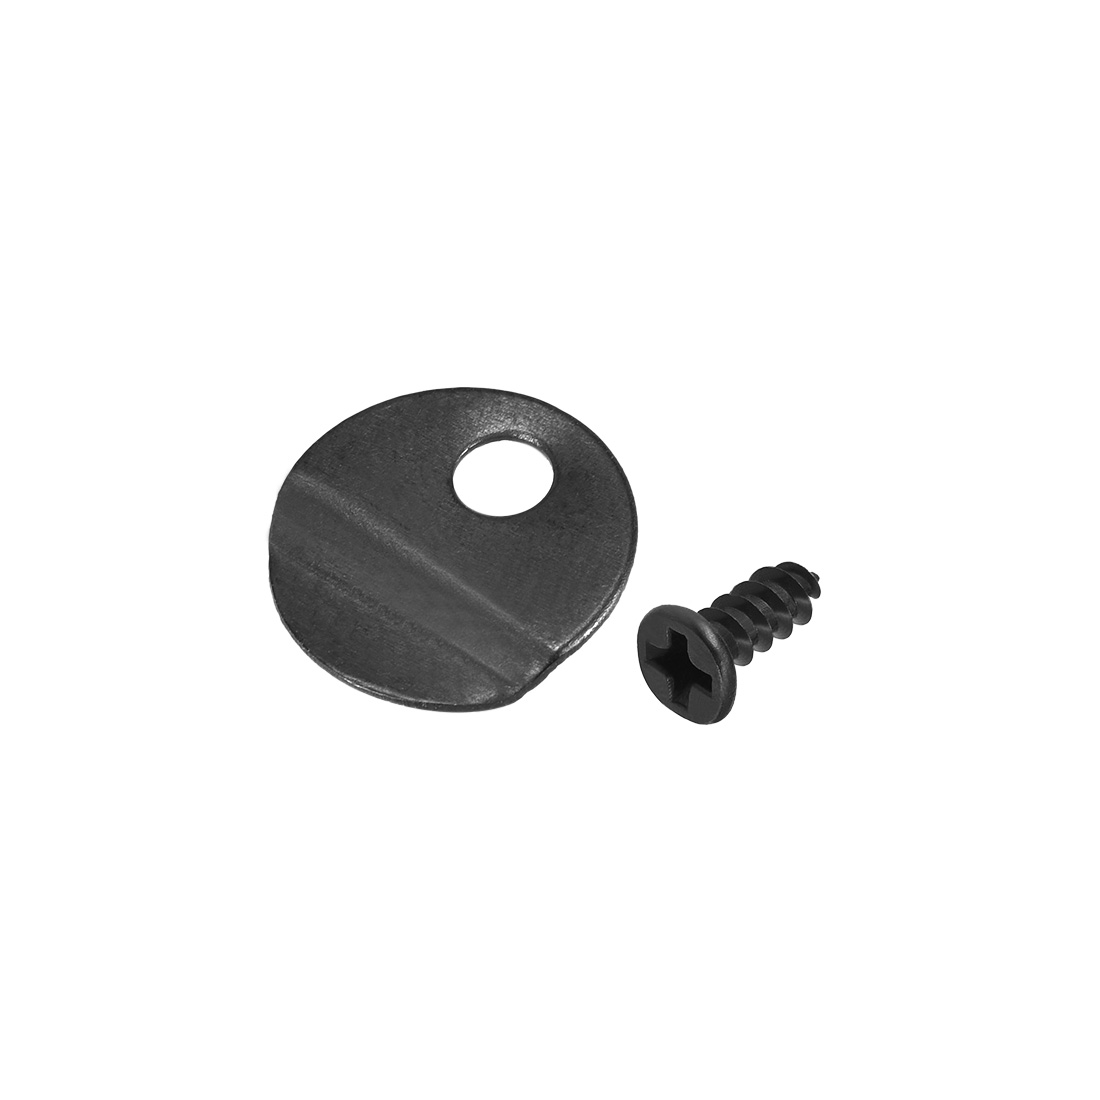 """Frame Turn Button, 1/2"""" Metal Round with Screws for Hanging, 50 Pcs (Black )"""